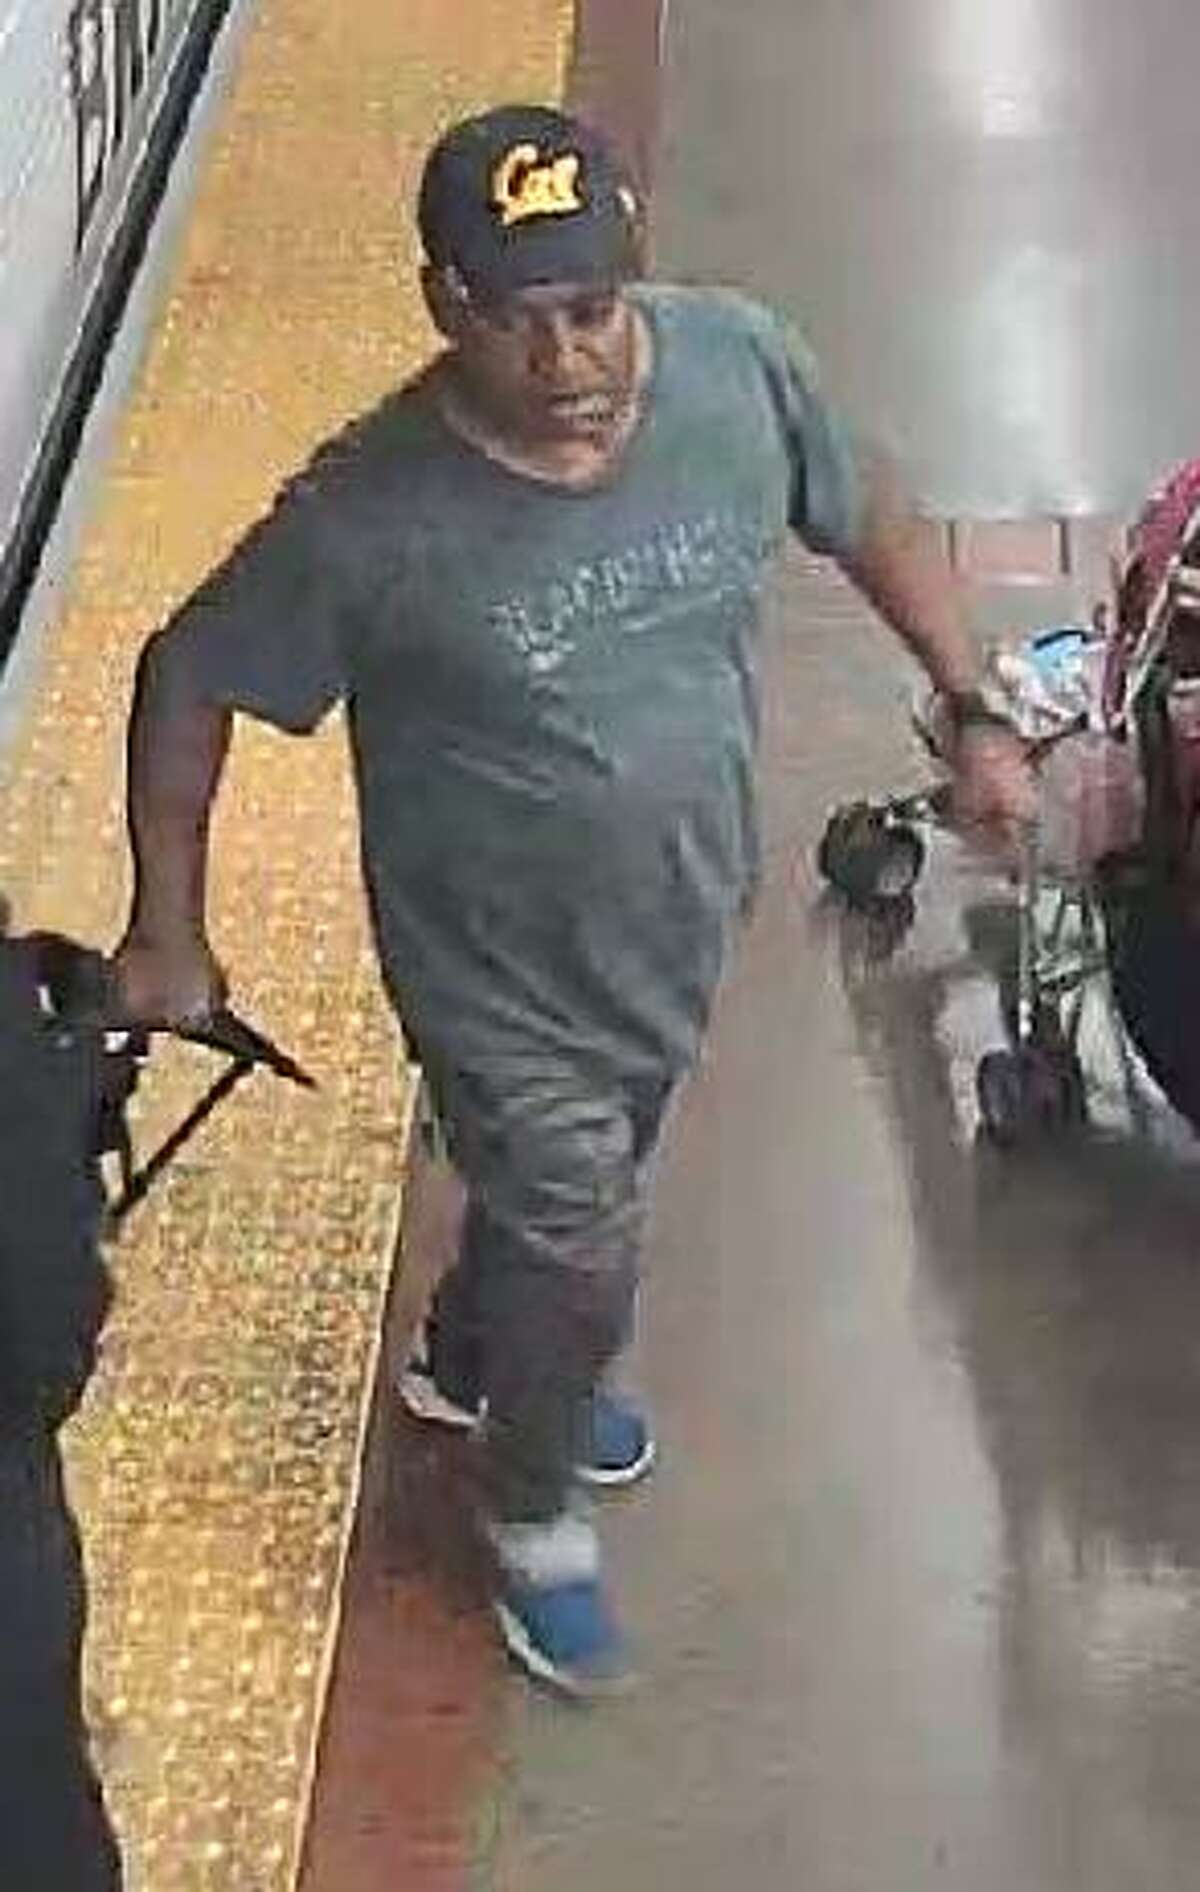 BART Police are asking for the public's help in identifying this man, a person of interest in a stabbing at the MacArthur Station in Oakland on Saturday August 26, 2018.